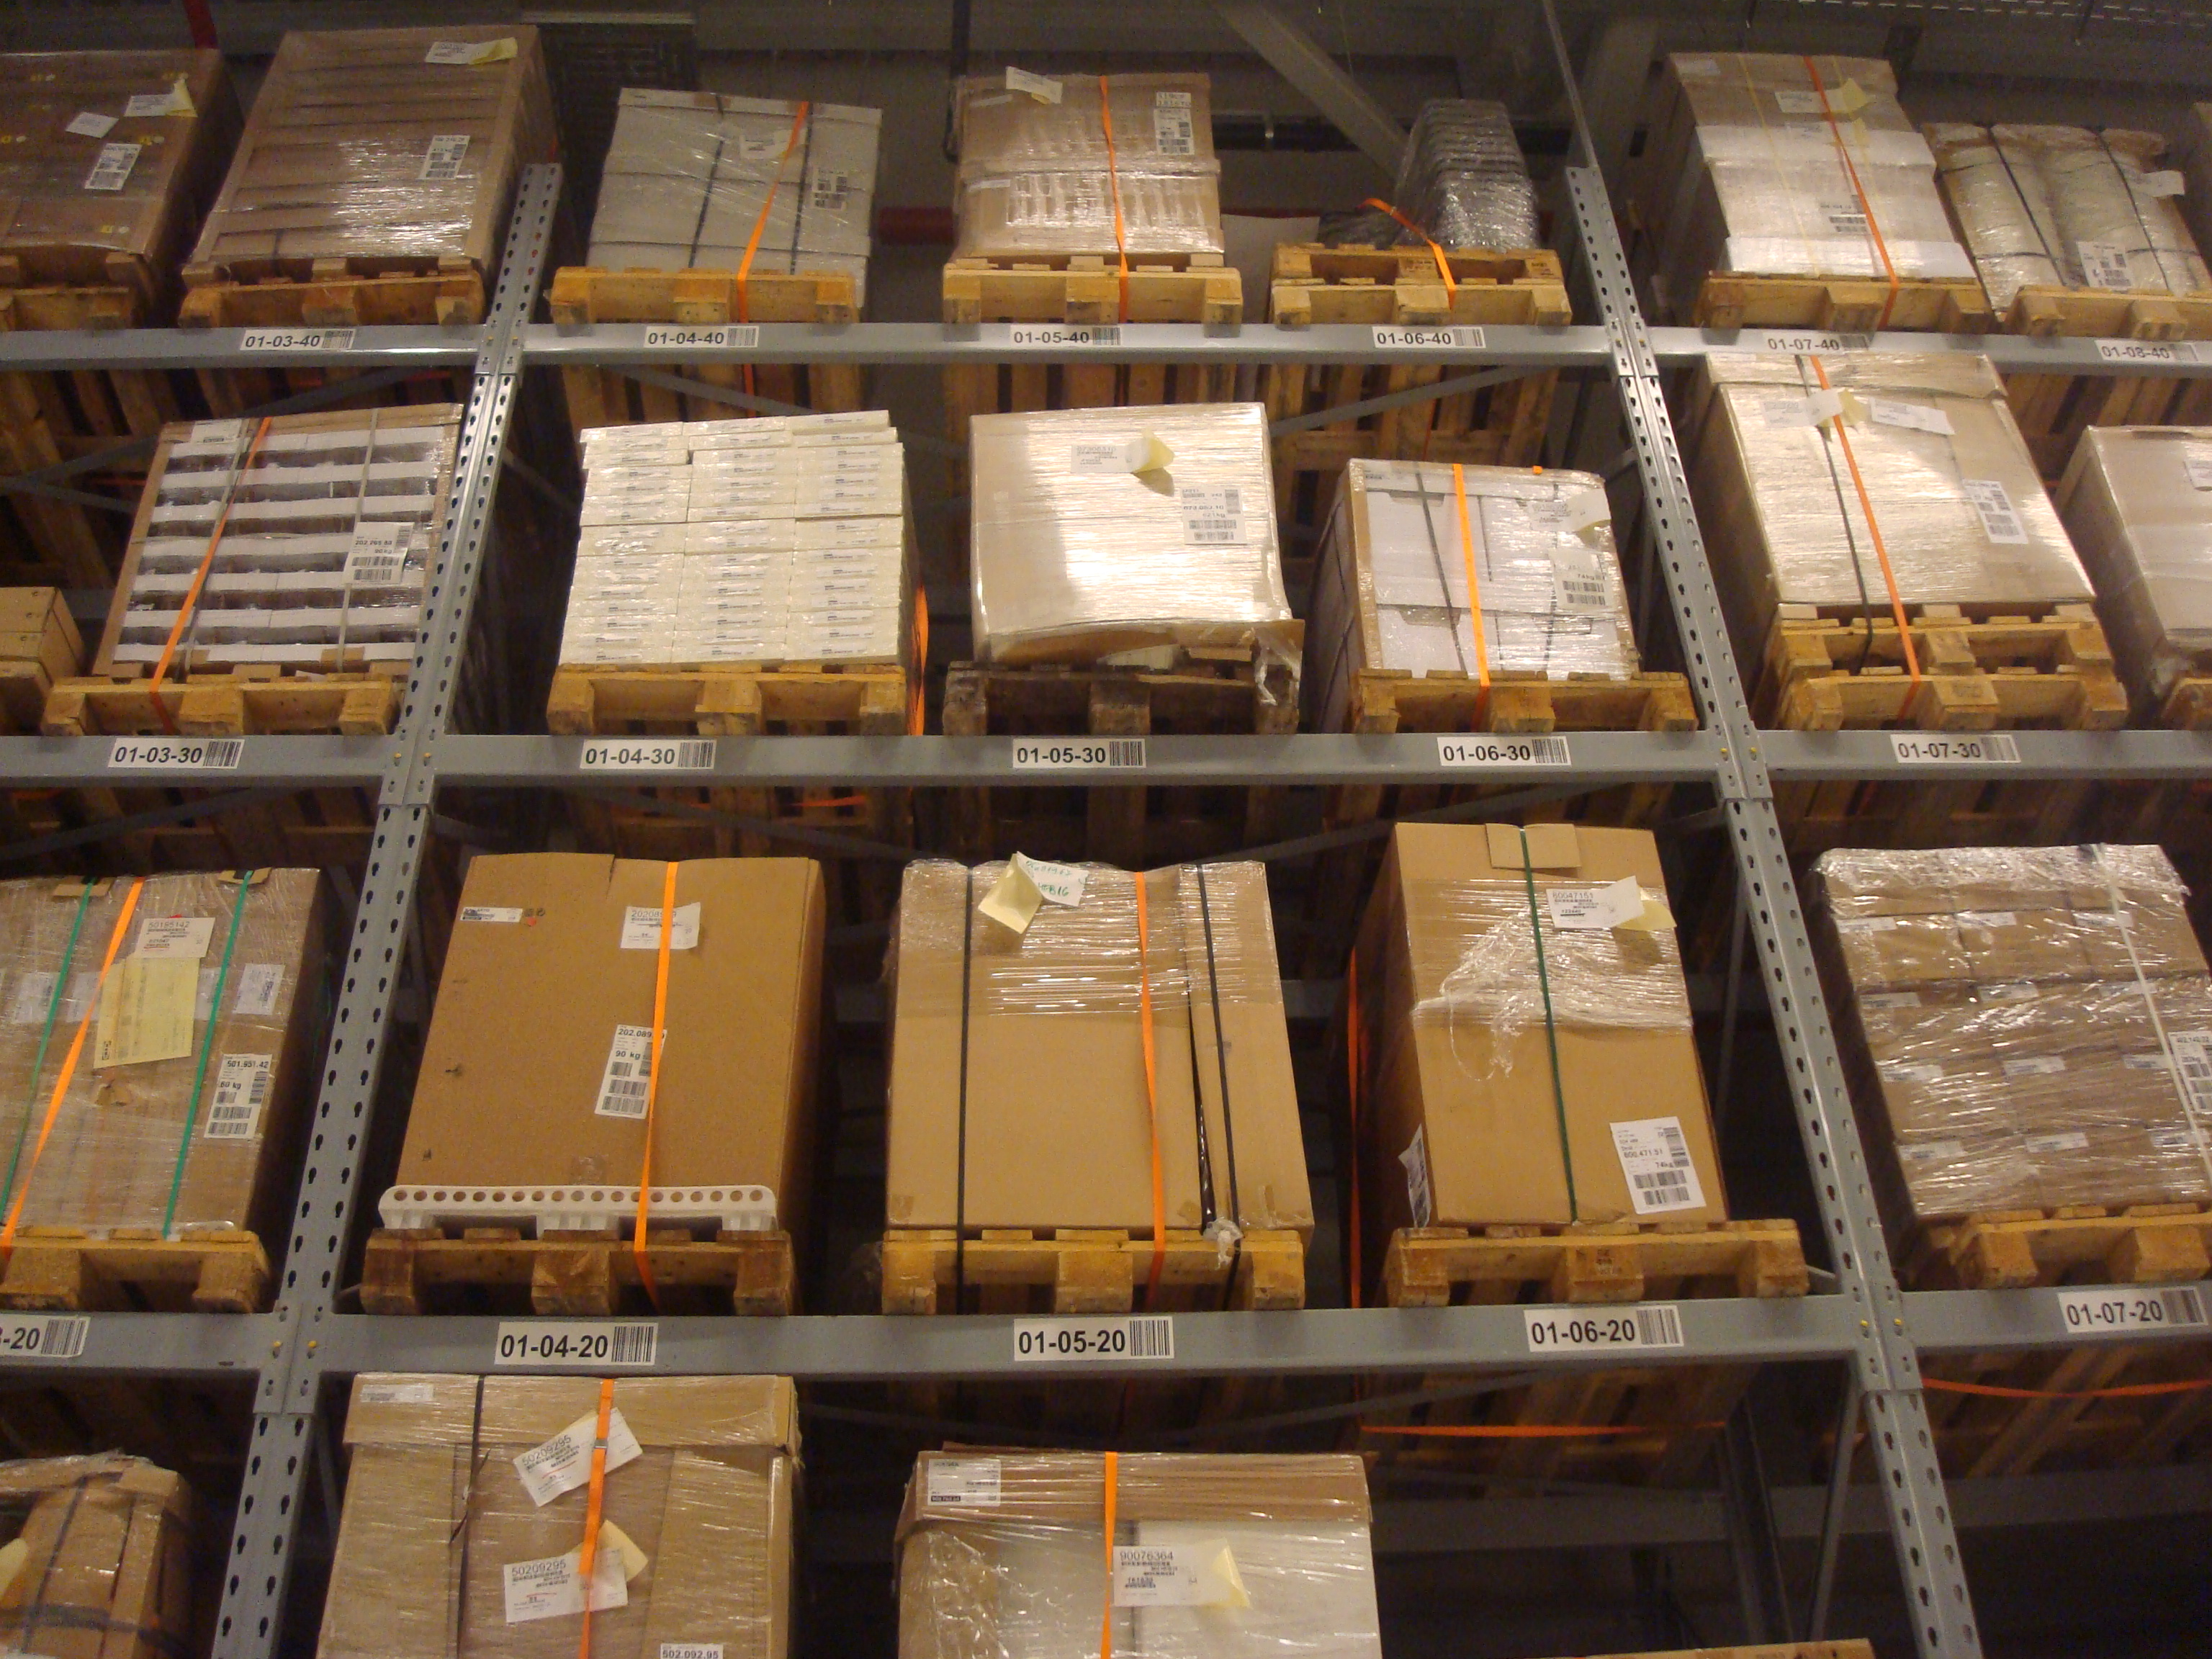 stockvault-boxes-in-a-warehouse138970